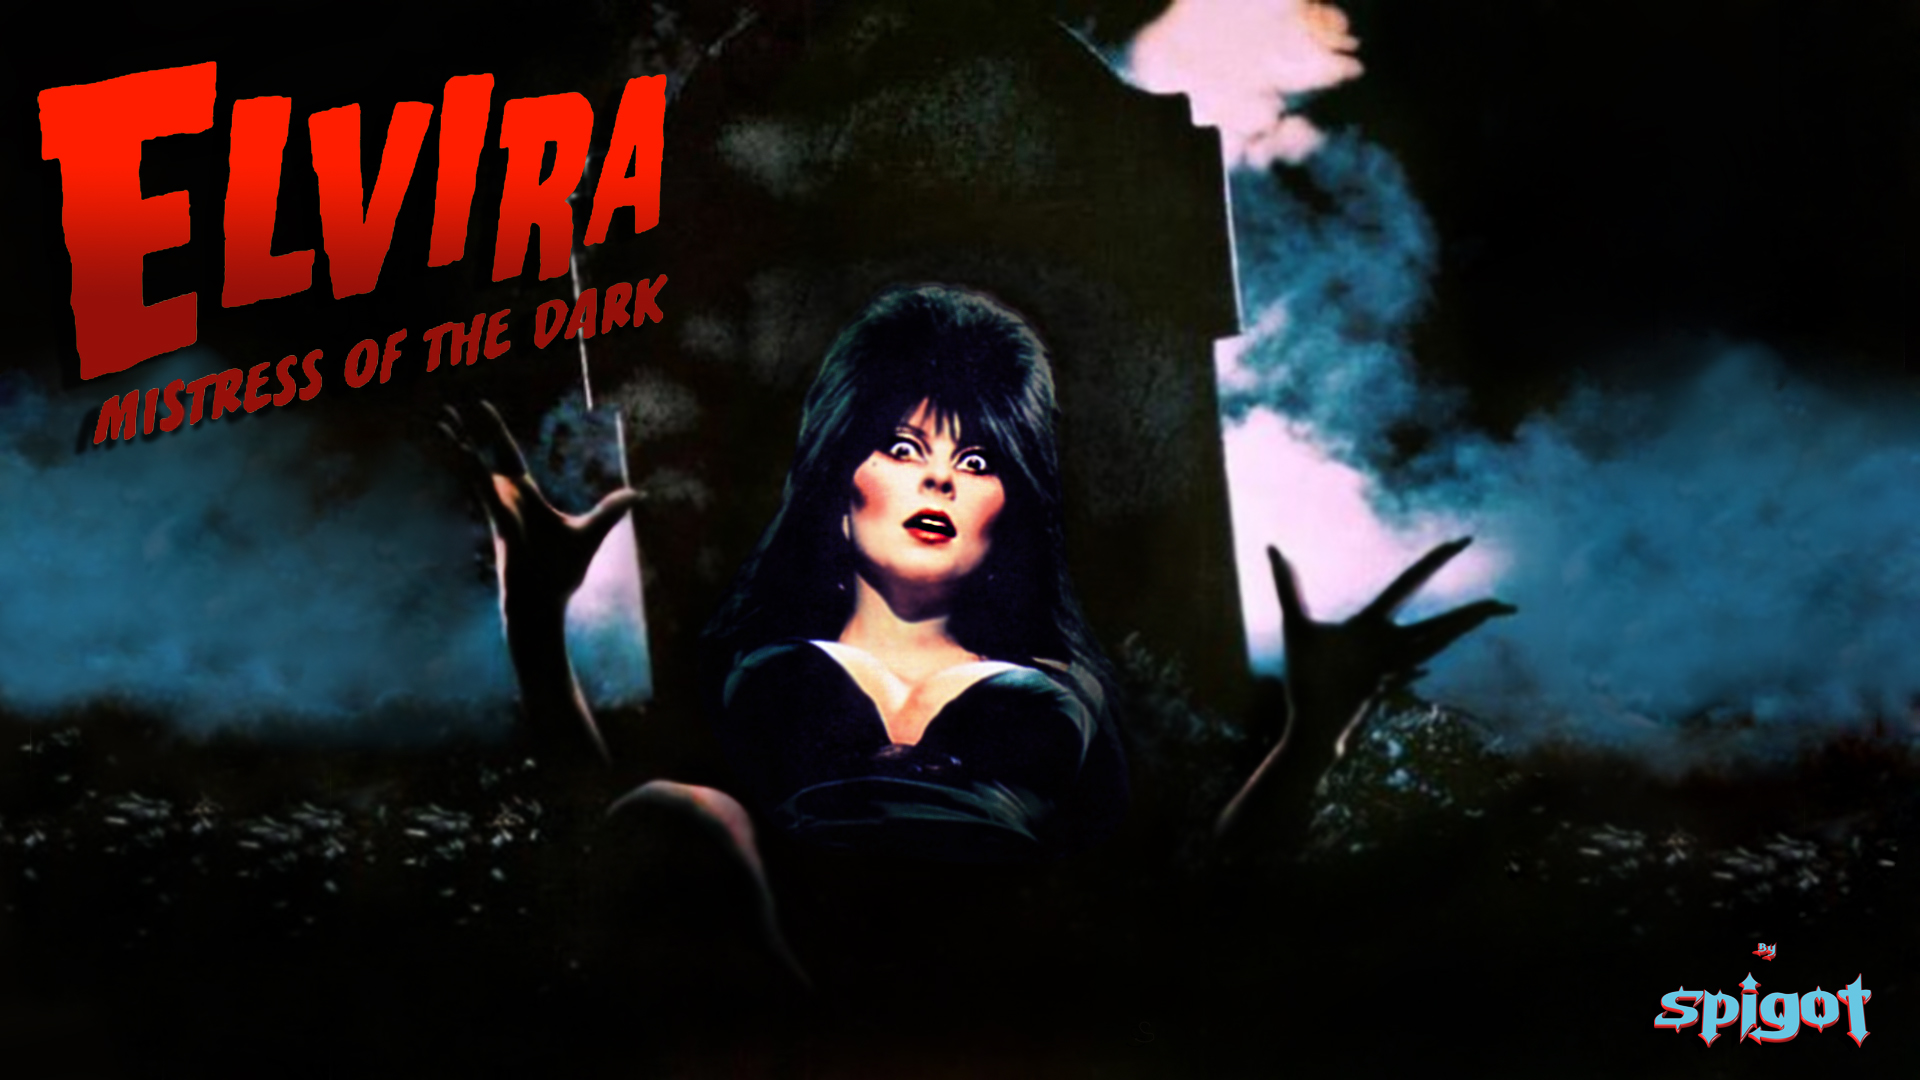 New Elvira April | elvira mistress of the dark vegas or